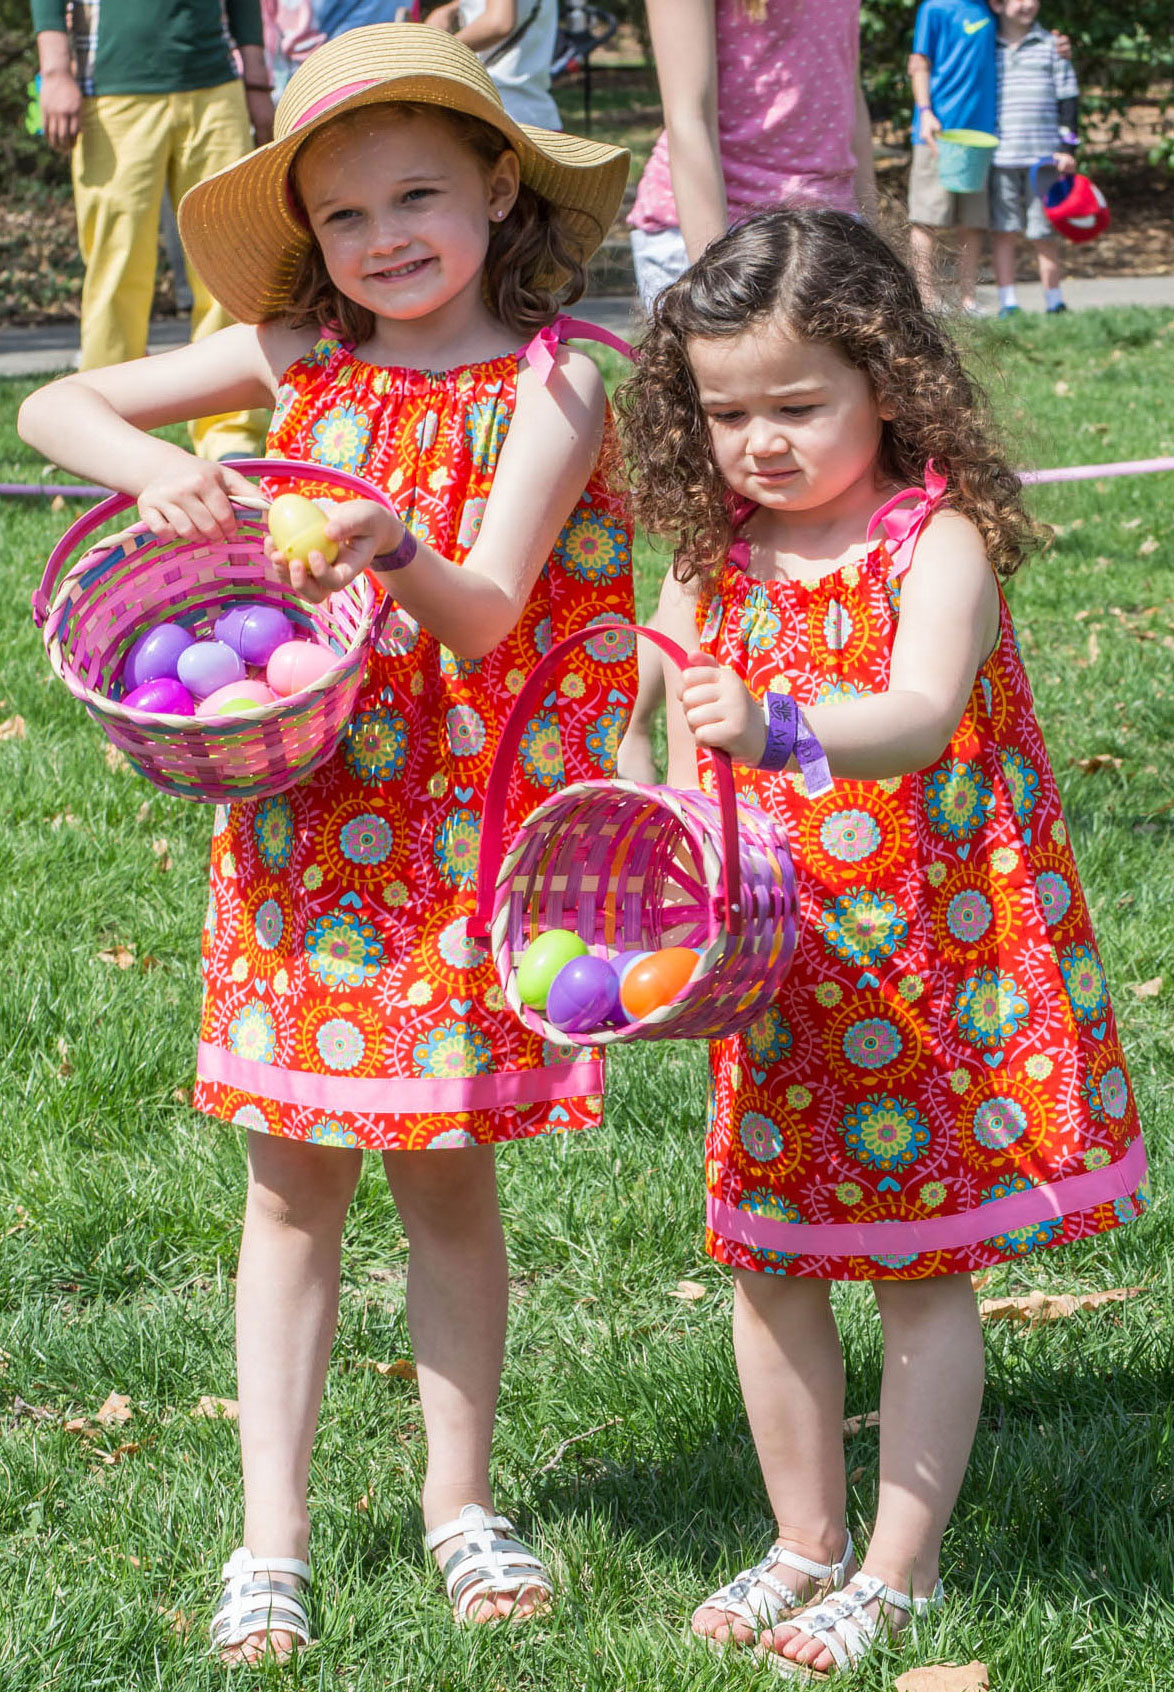 Eggstravaganza baskets